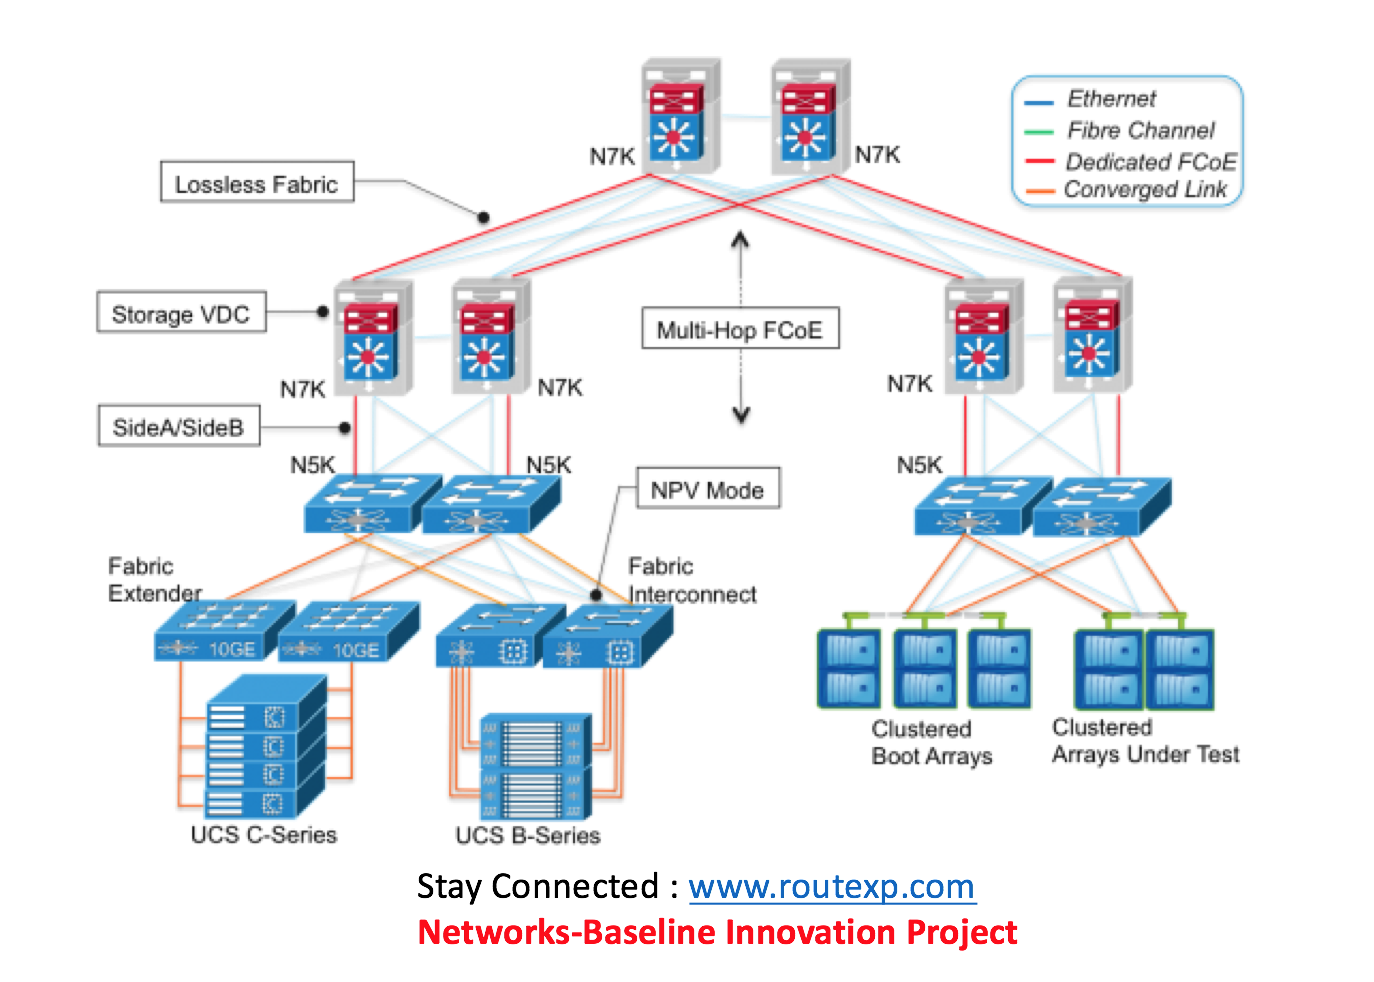 cisco ucs diagram auto rod controls 3720 wiring datacenter cli command reference for nexus 7000